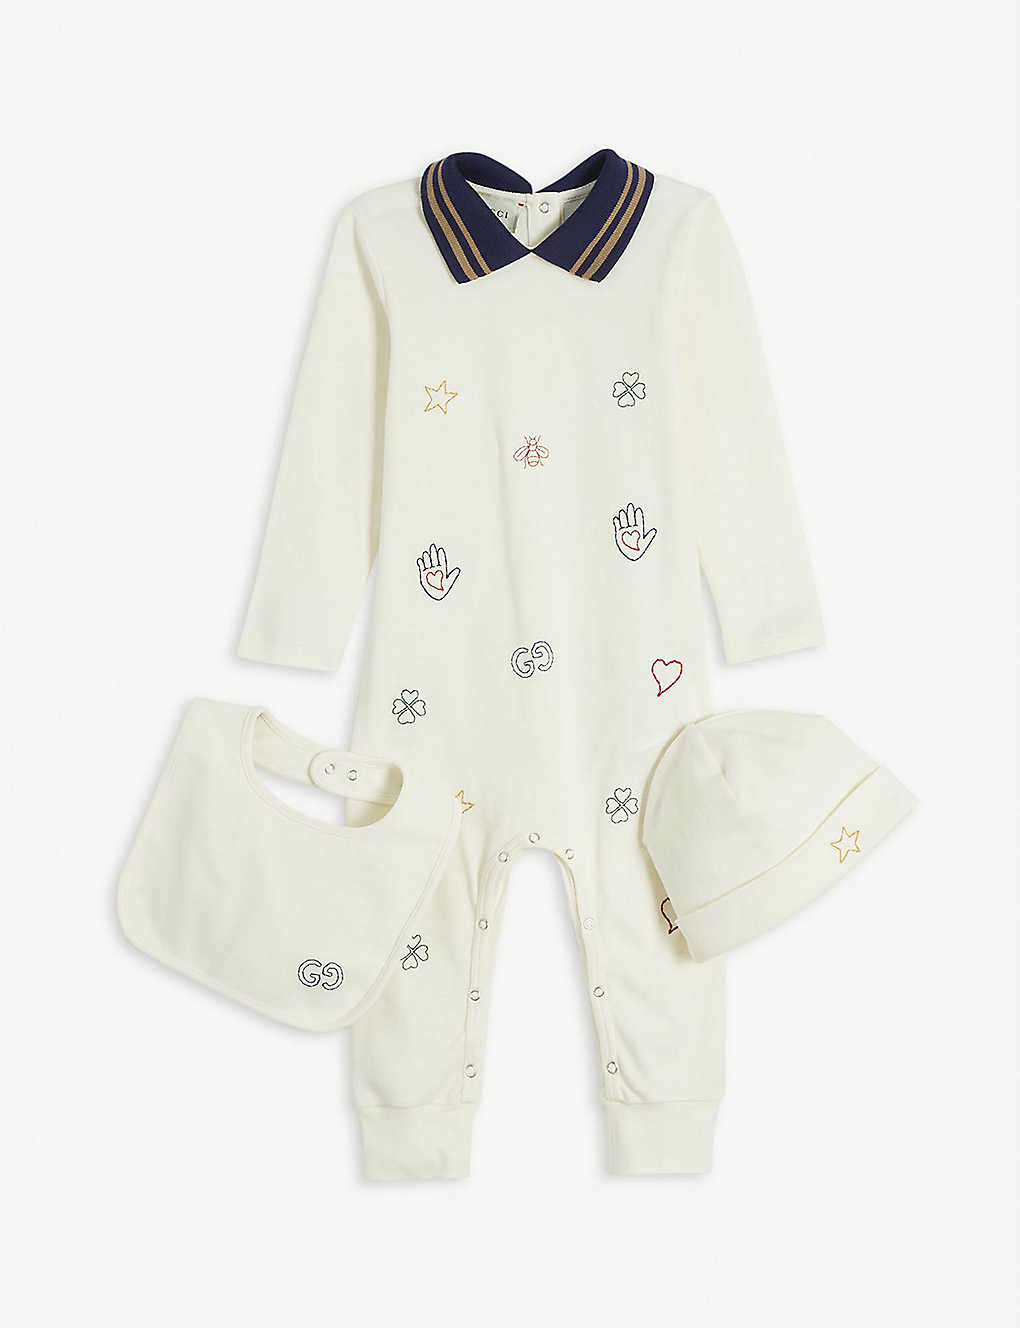 GUCCI: Graphic-print cotton baby grow set 0-24 months